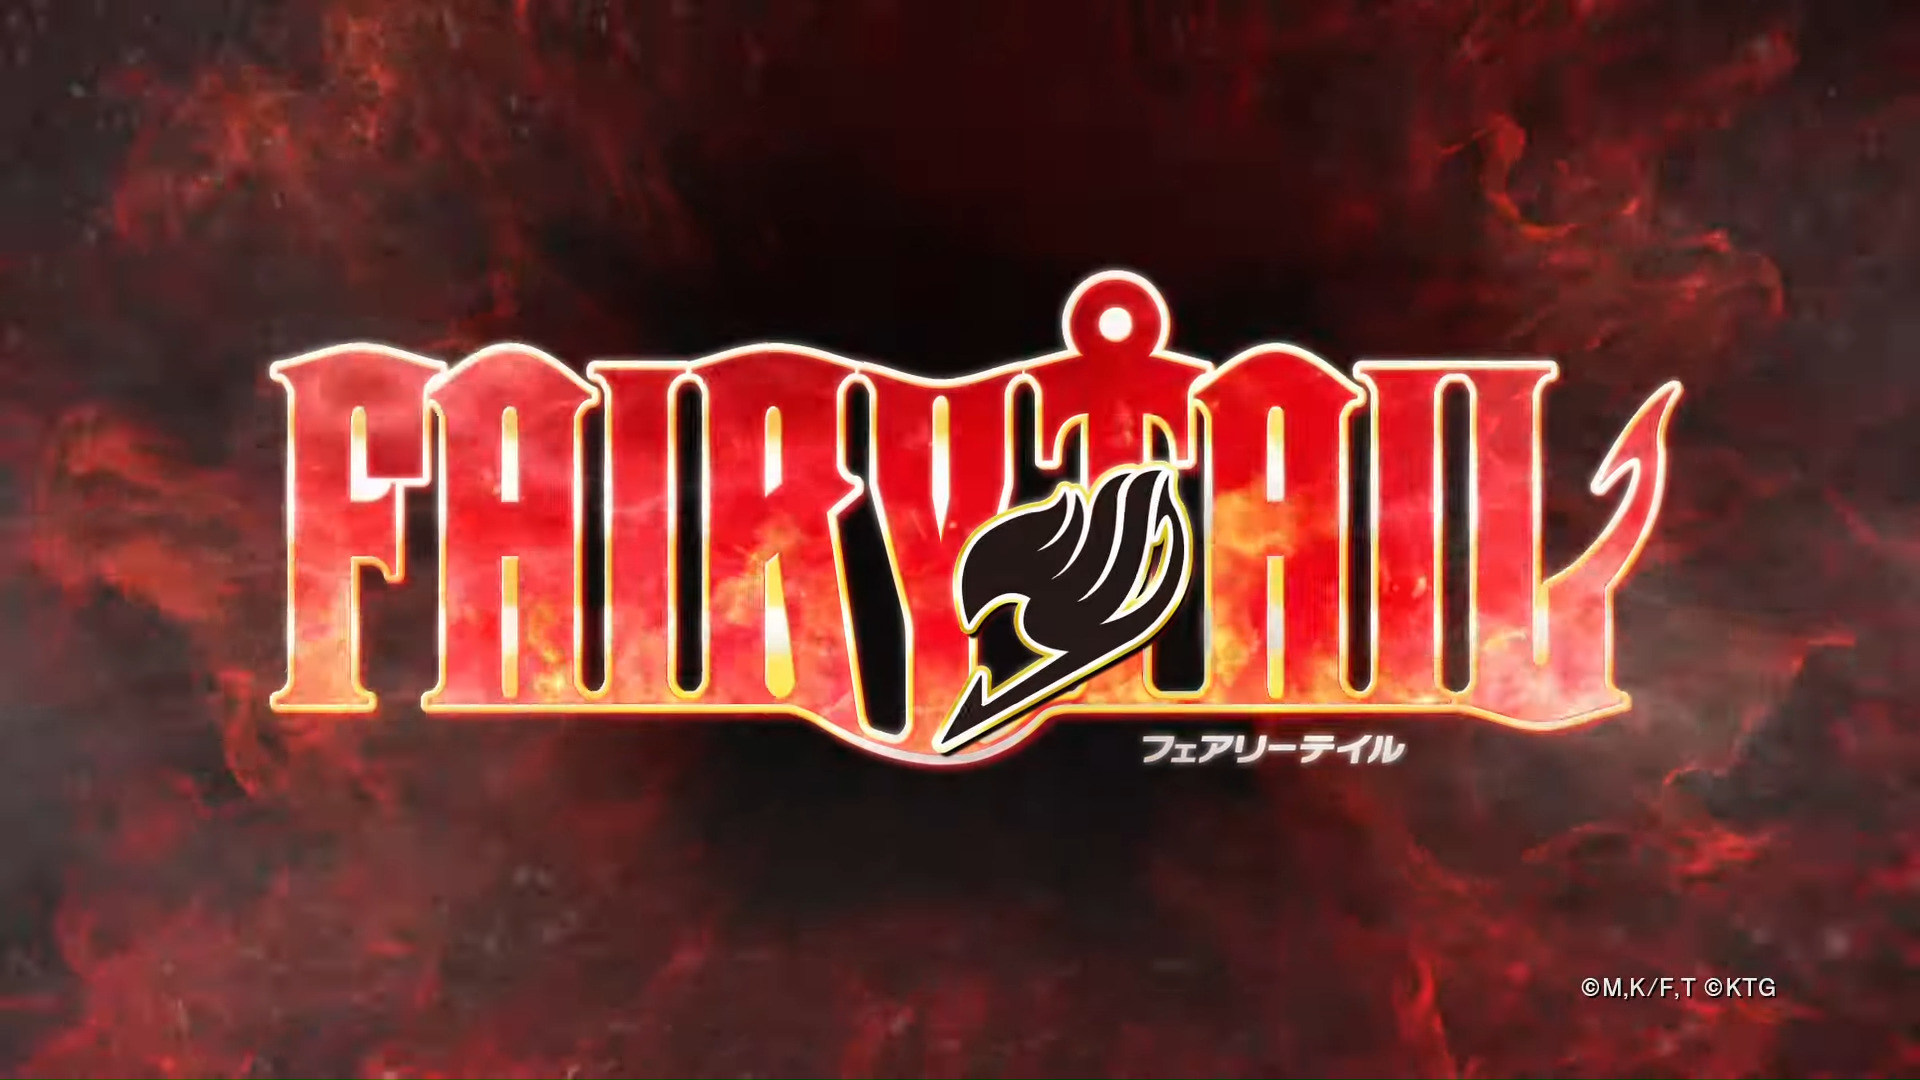 The Problems With FAIRY TAIL On Steam – Poor Port Issues When Trying To Play The Game On PC